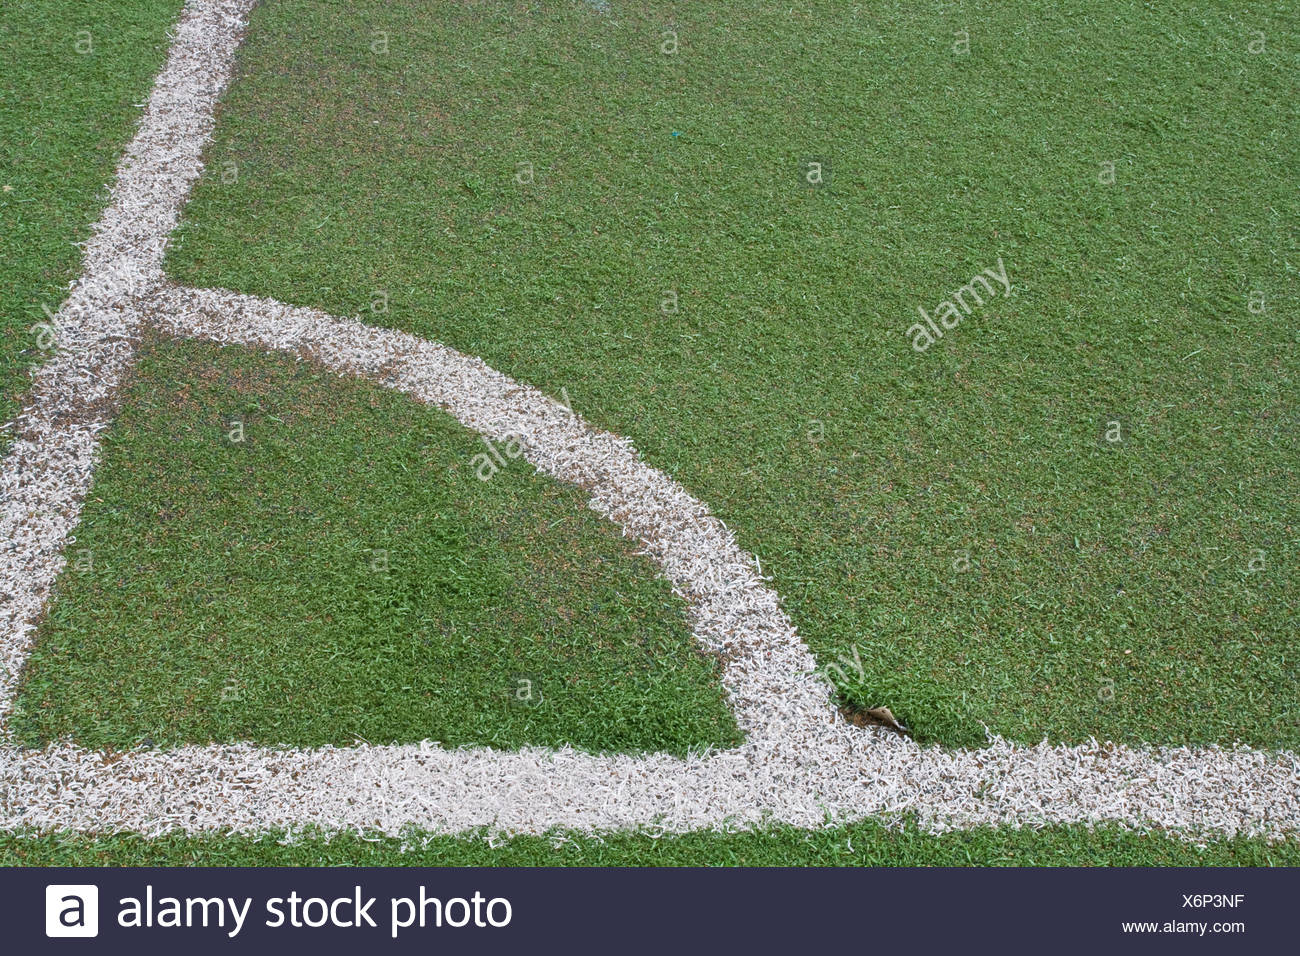 Corner of football field with fake grass - Stock Image